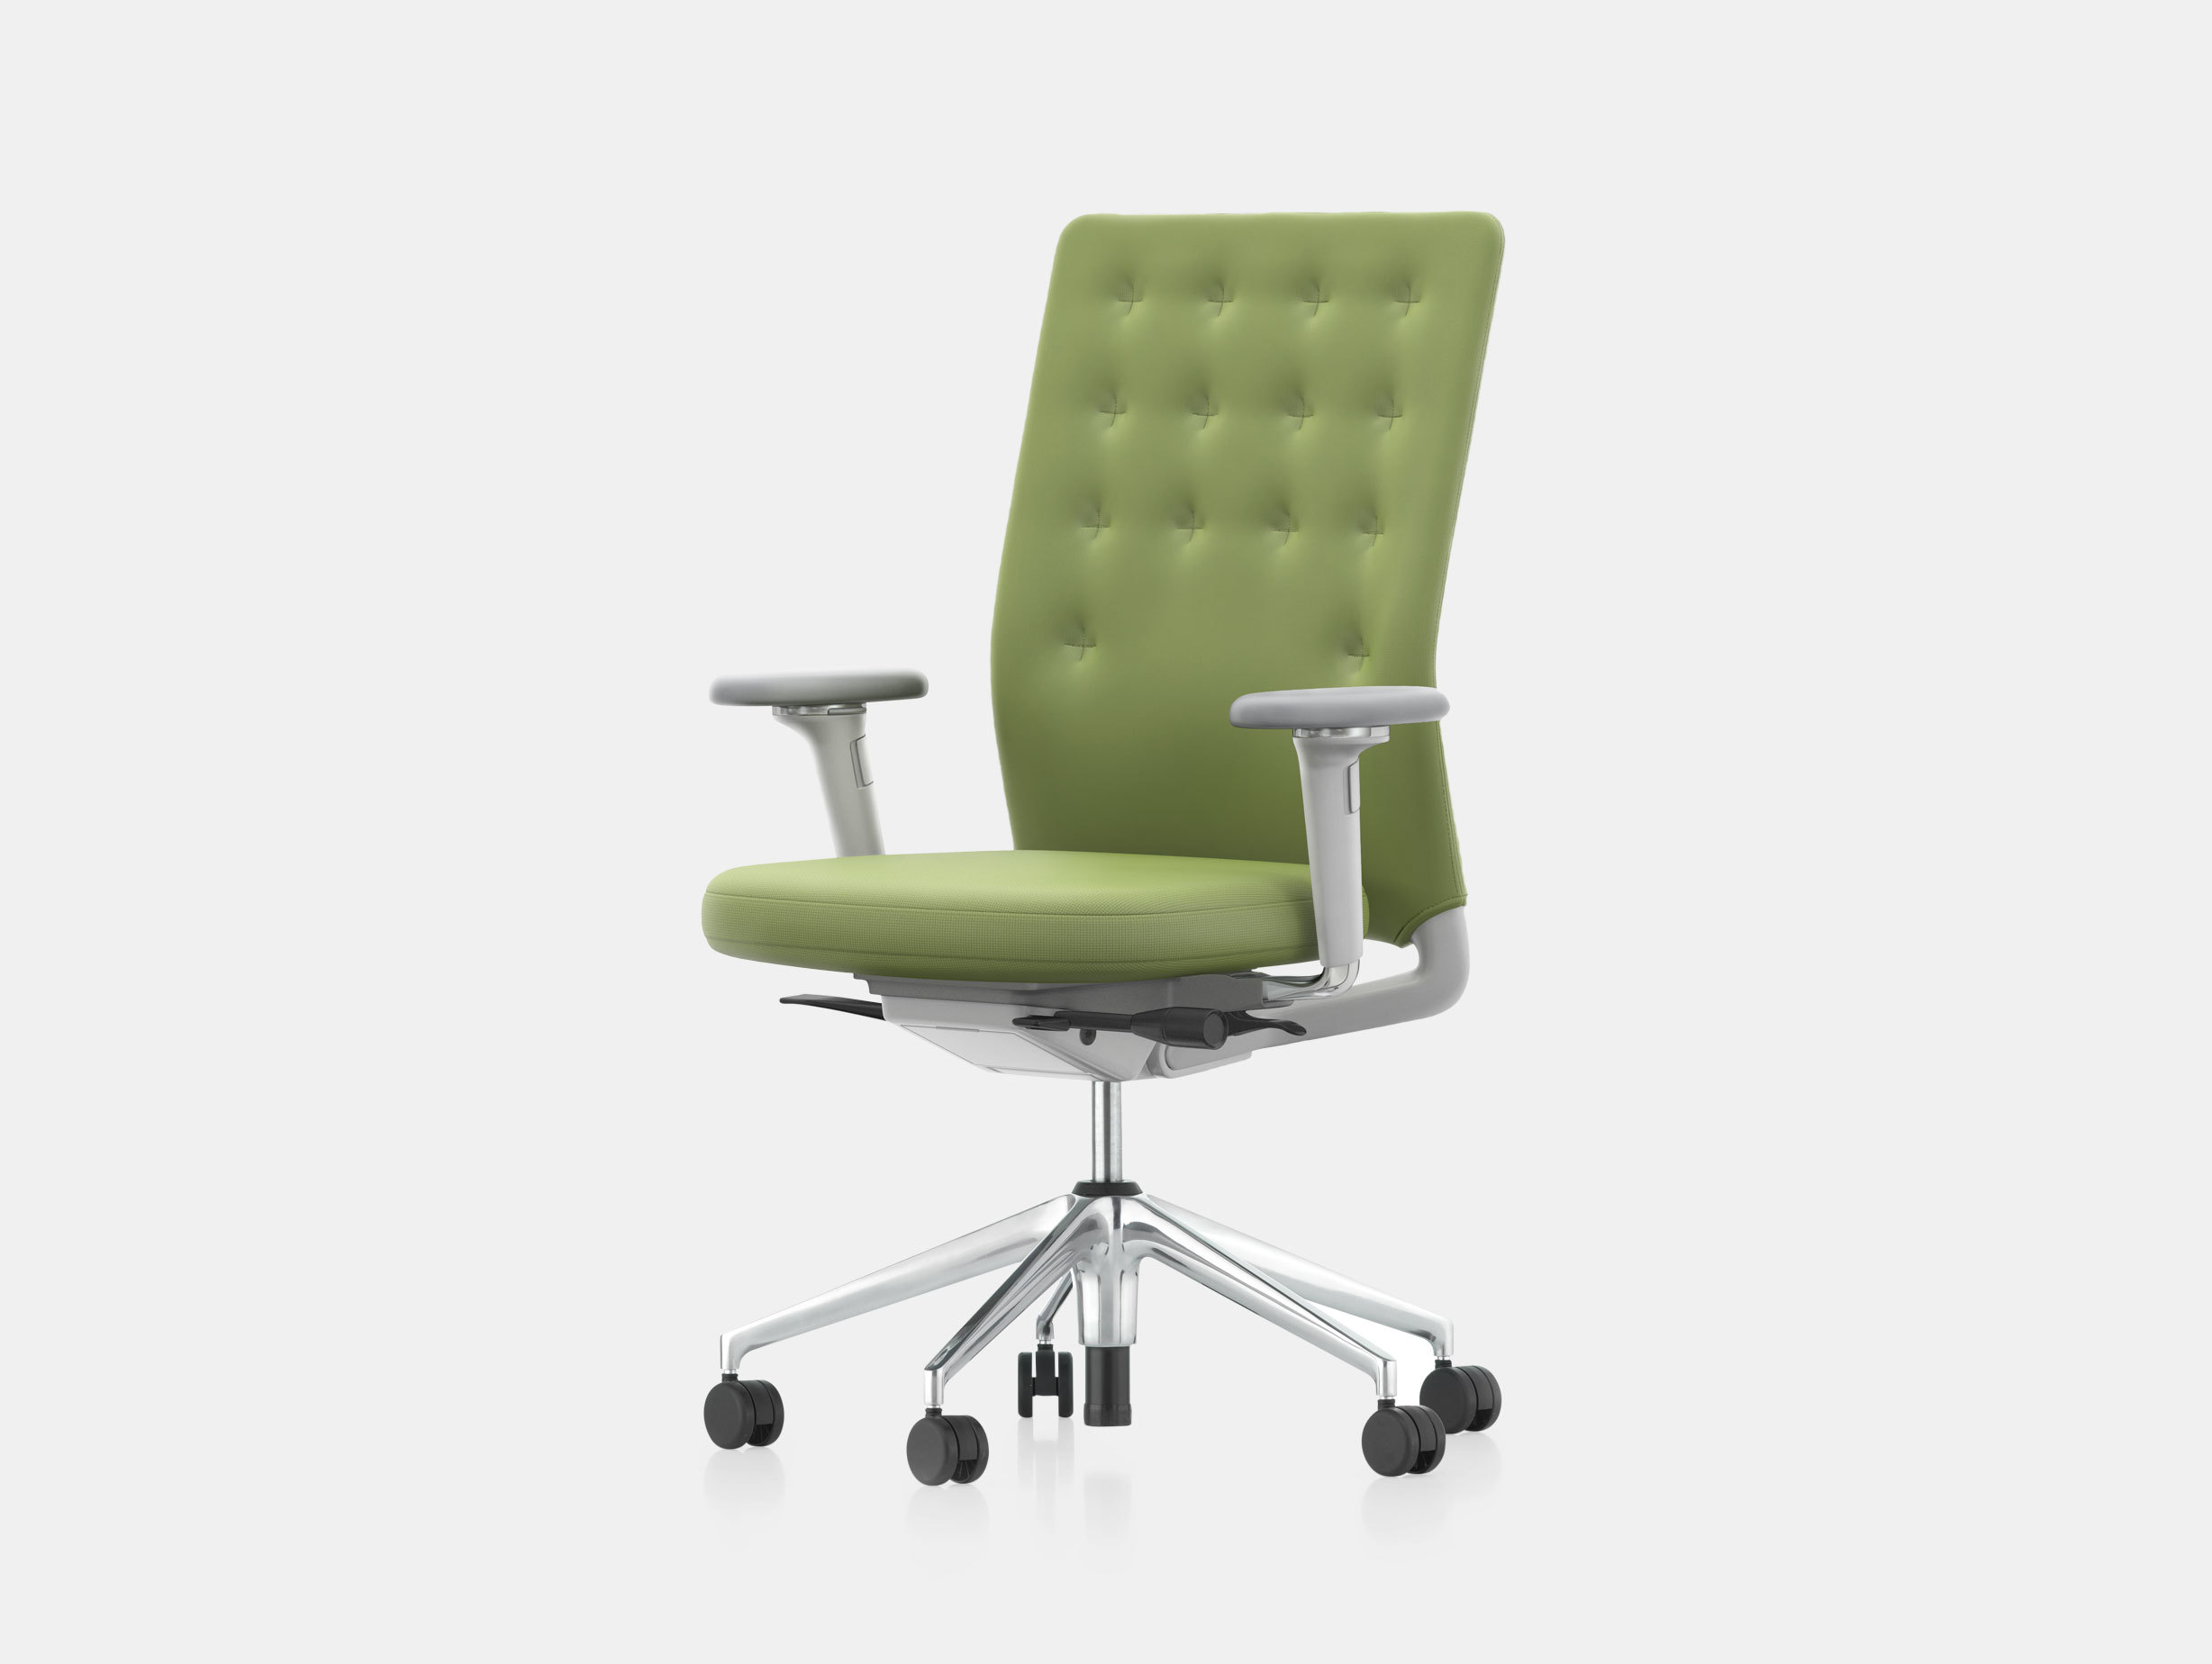 Vitra Office Chair Id Trim Office Chair Viaduct